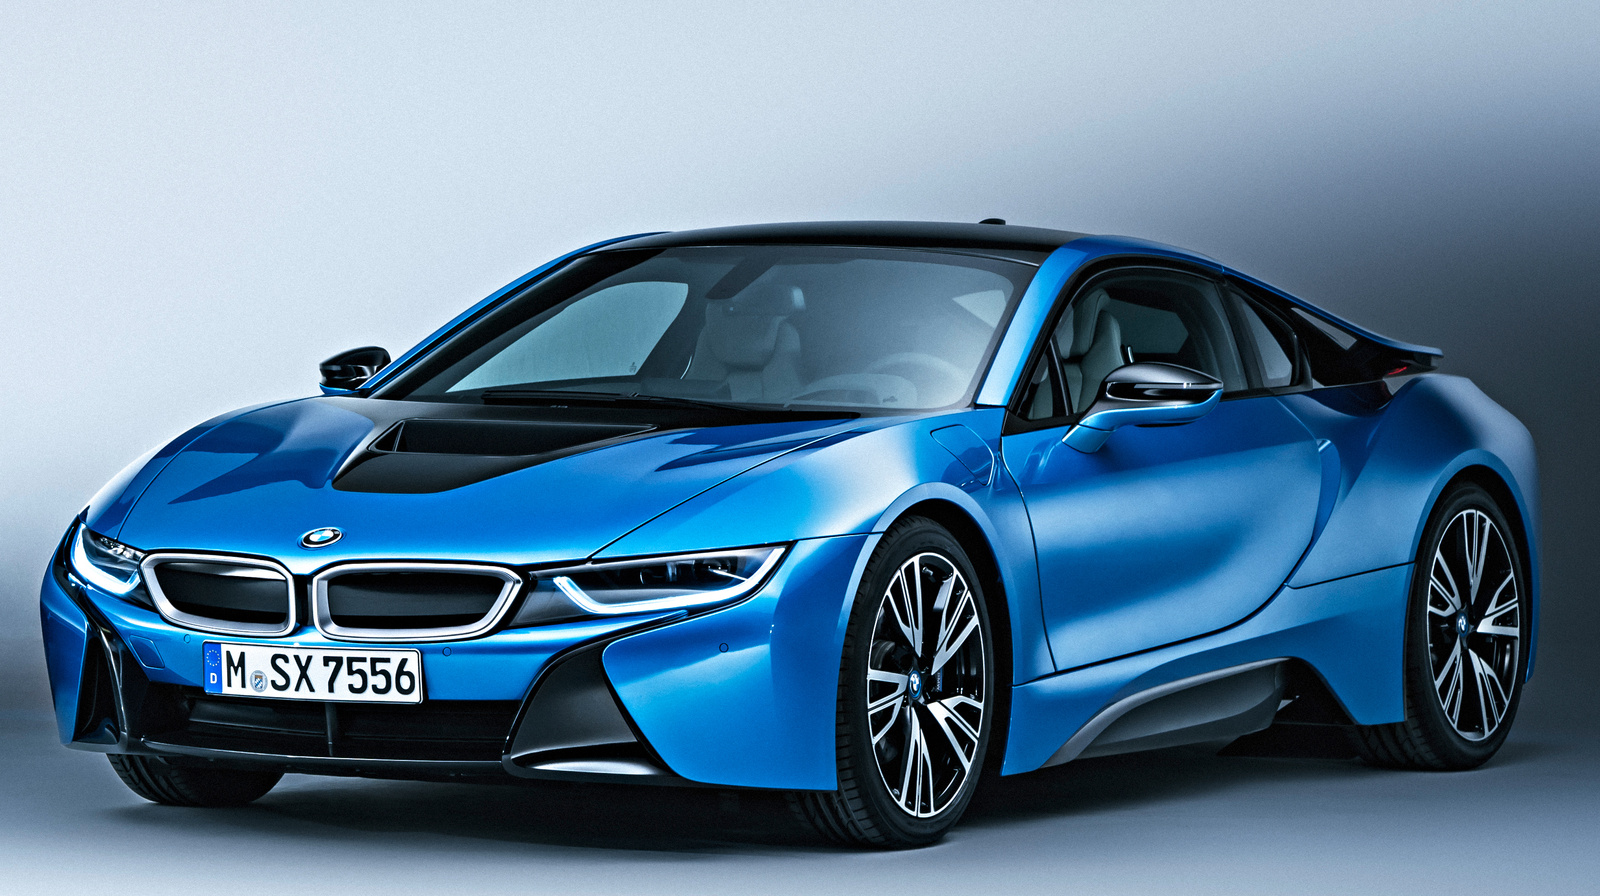 2017 bmw i8 for sale in erie pa cargurus. Black Bedroom Furniture Sets. Home Design Ideas